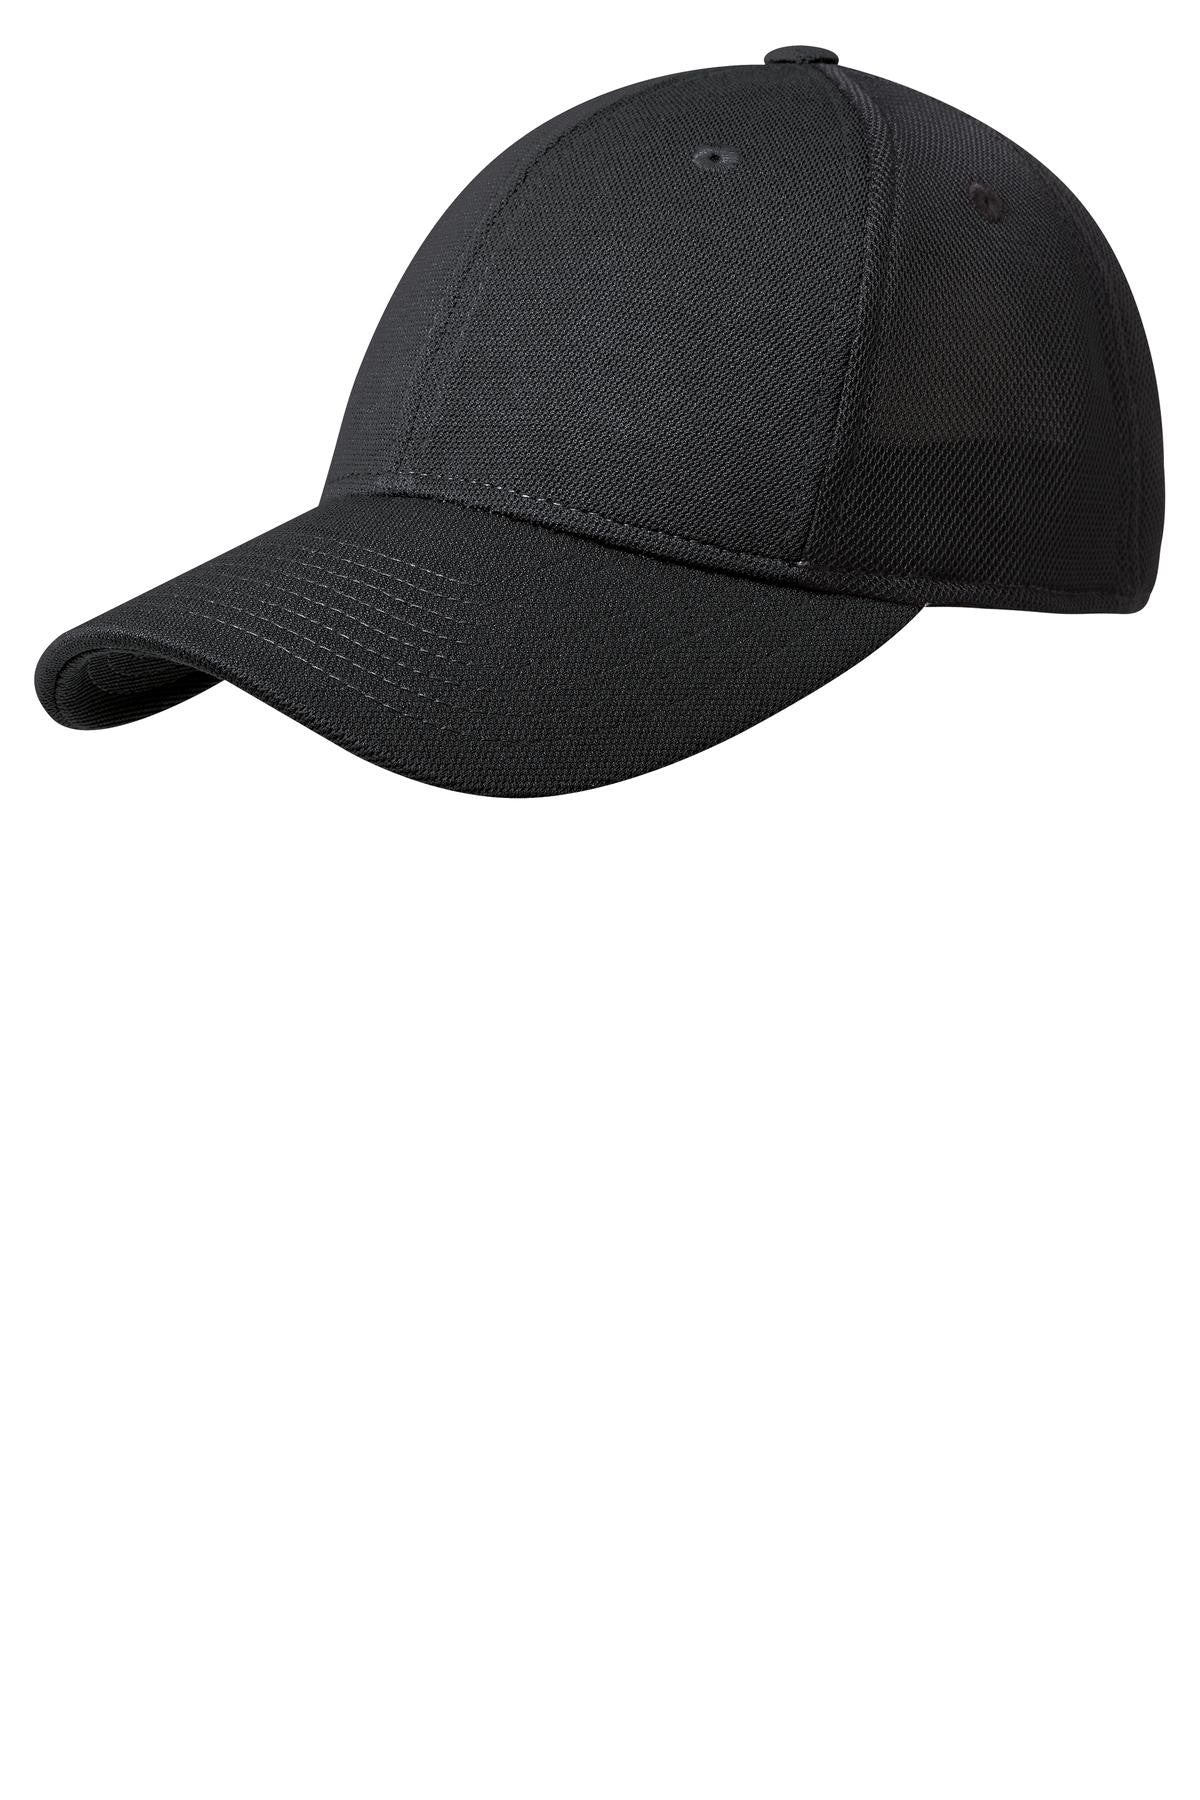 Port Authority® Pique Mesh Cap. C826 – Embroidery Creations 59921a5a06df